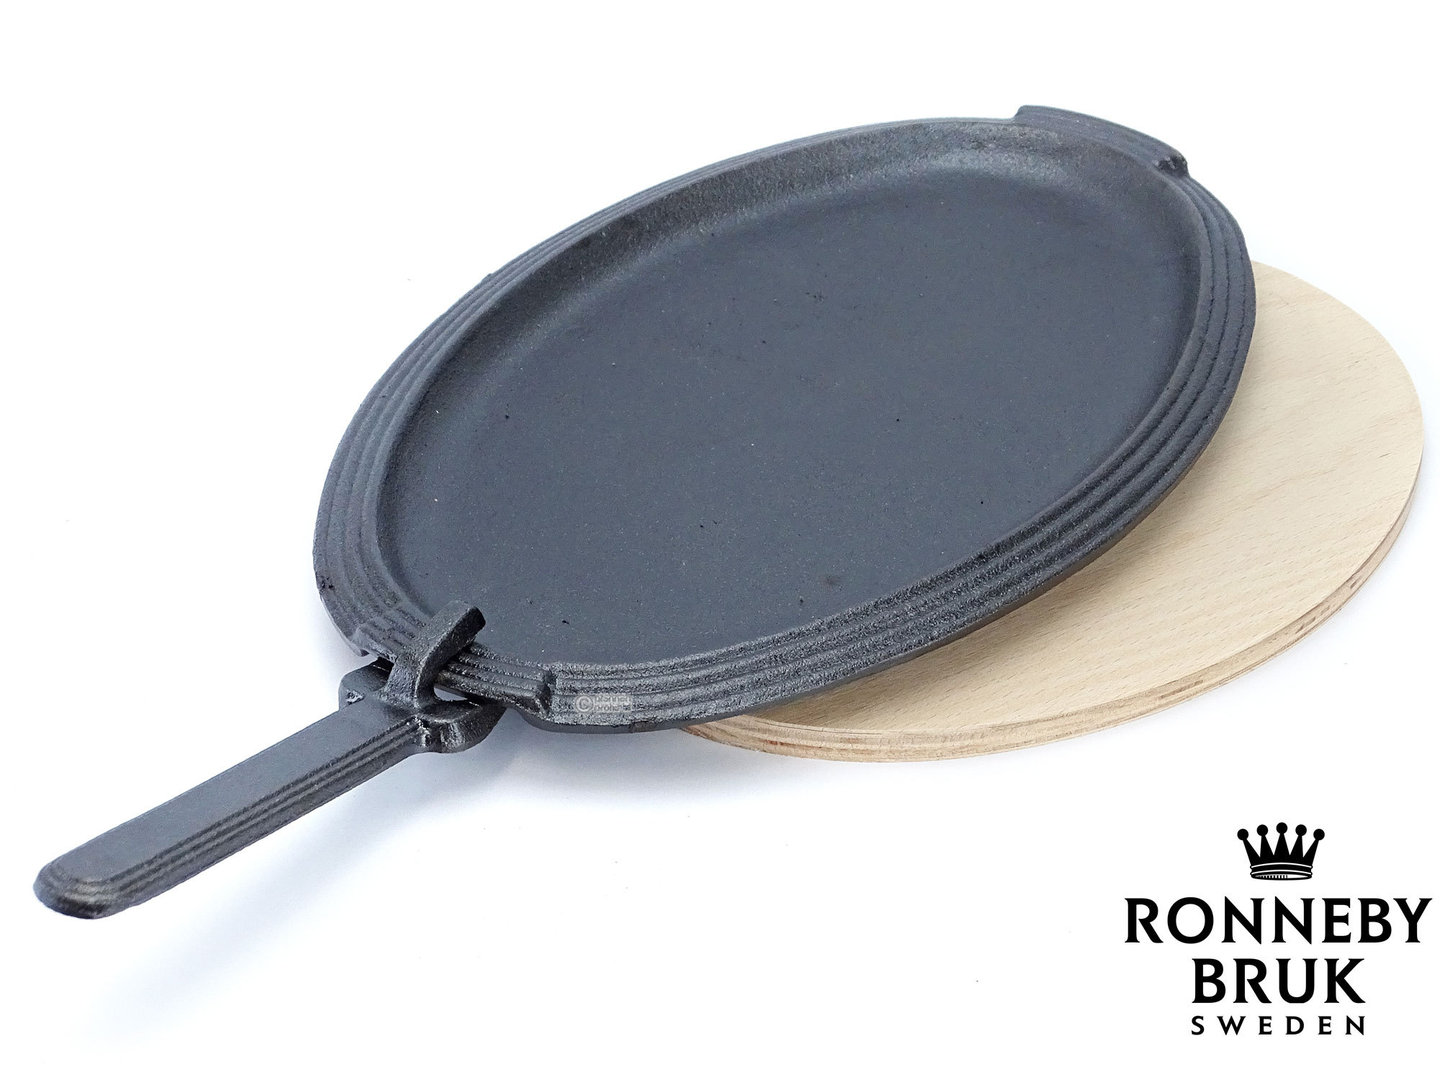 RONNEBY BRUK cast iron fajita pan RONDO oval, detachable handle, with wooden tray